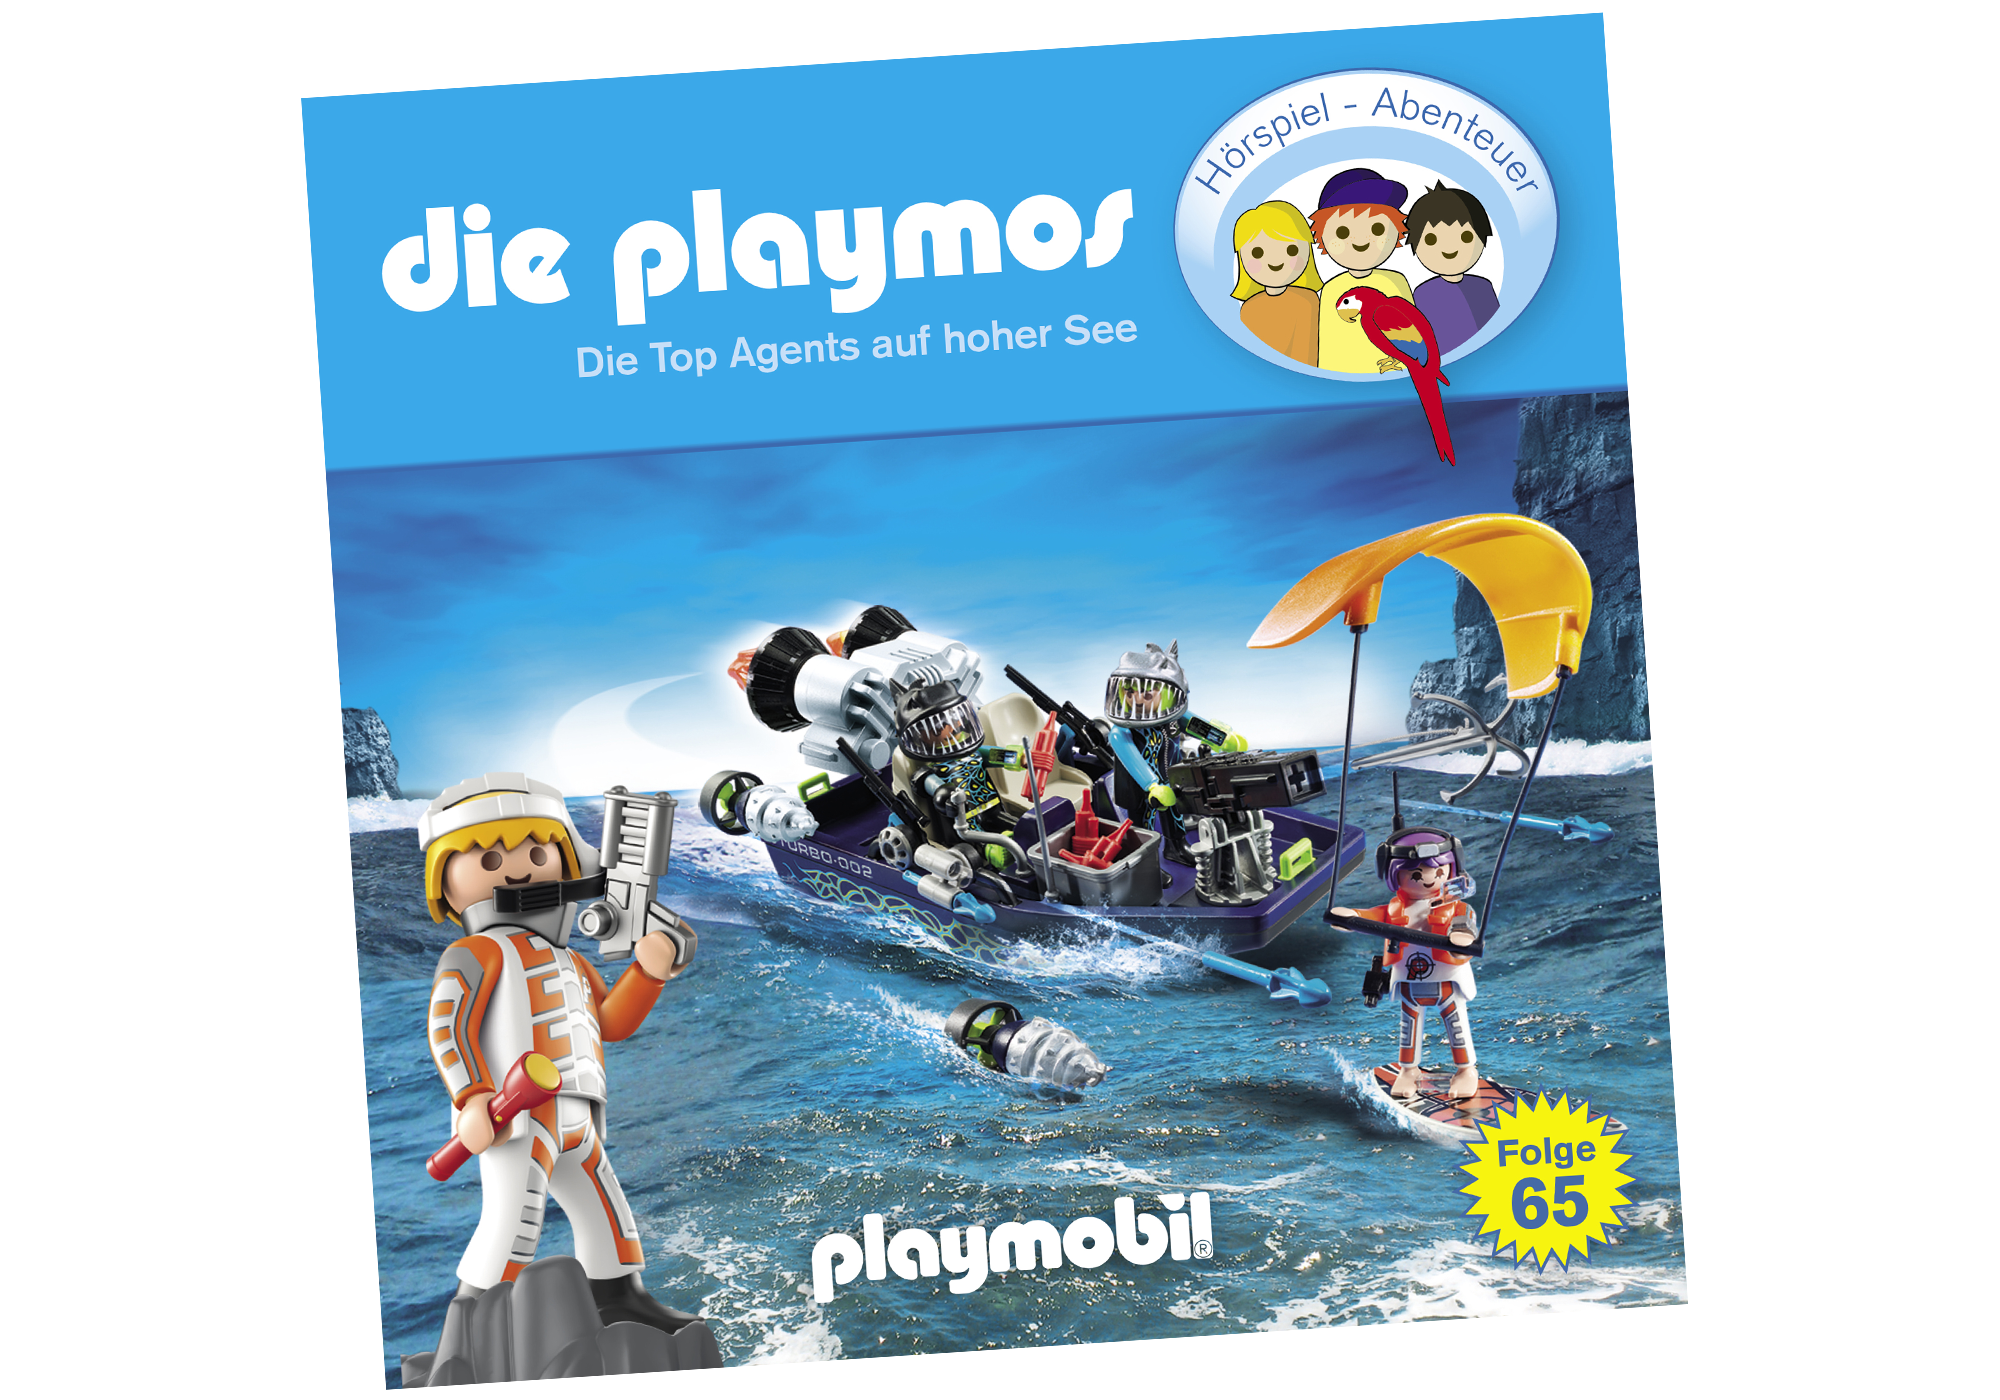 http://media.playmobil.com/i/playmobil/80133_product_detail/Die Top Agents auf hoher See - Folge 65